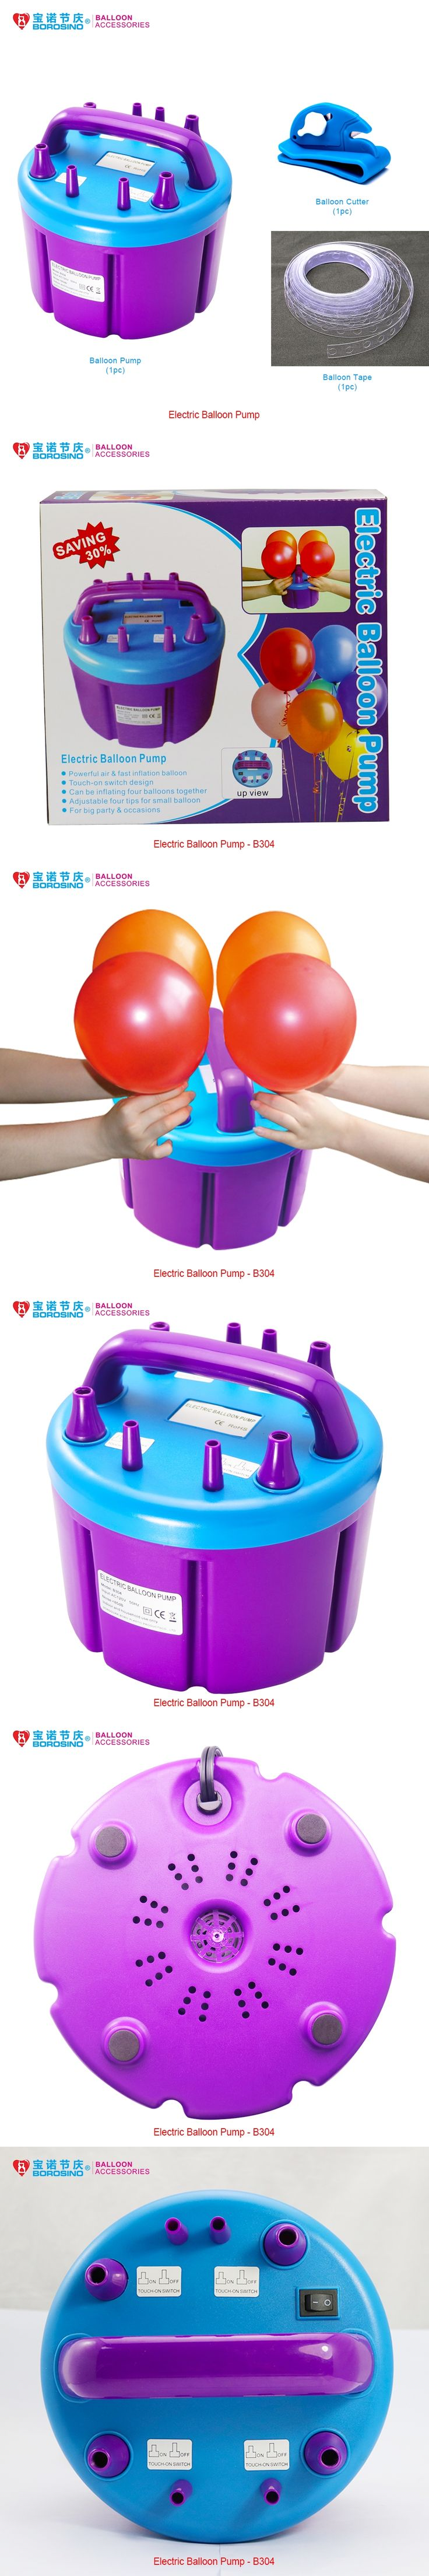 B304 Free Shipping High Power Four Filling Nozzle Inflatable Electric Balloon Pump Air Inflator Machine